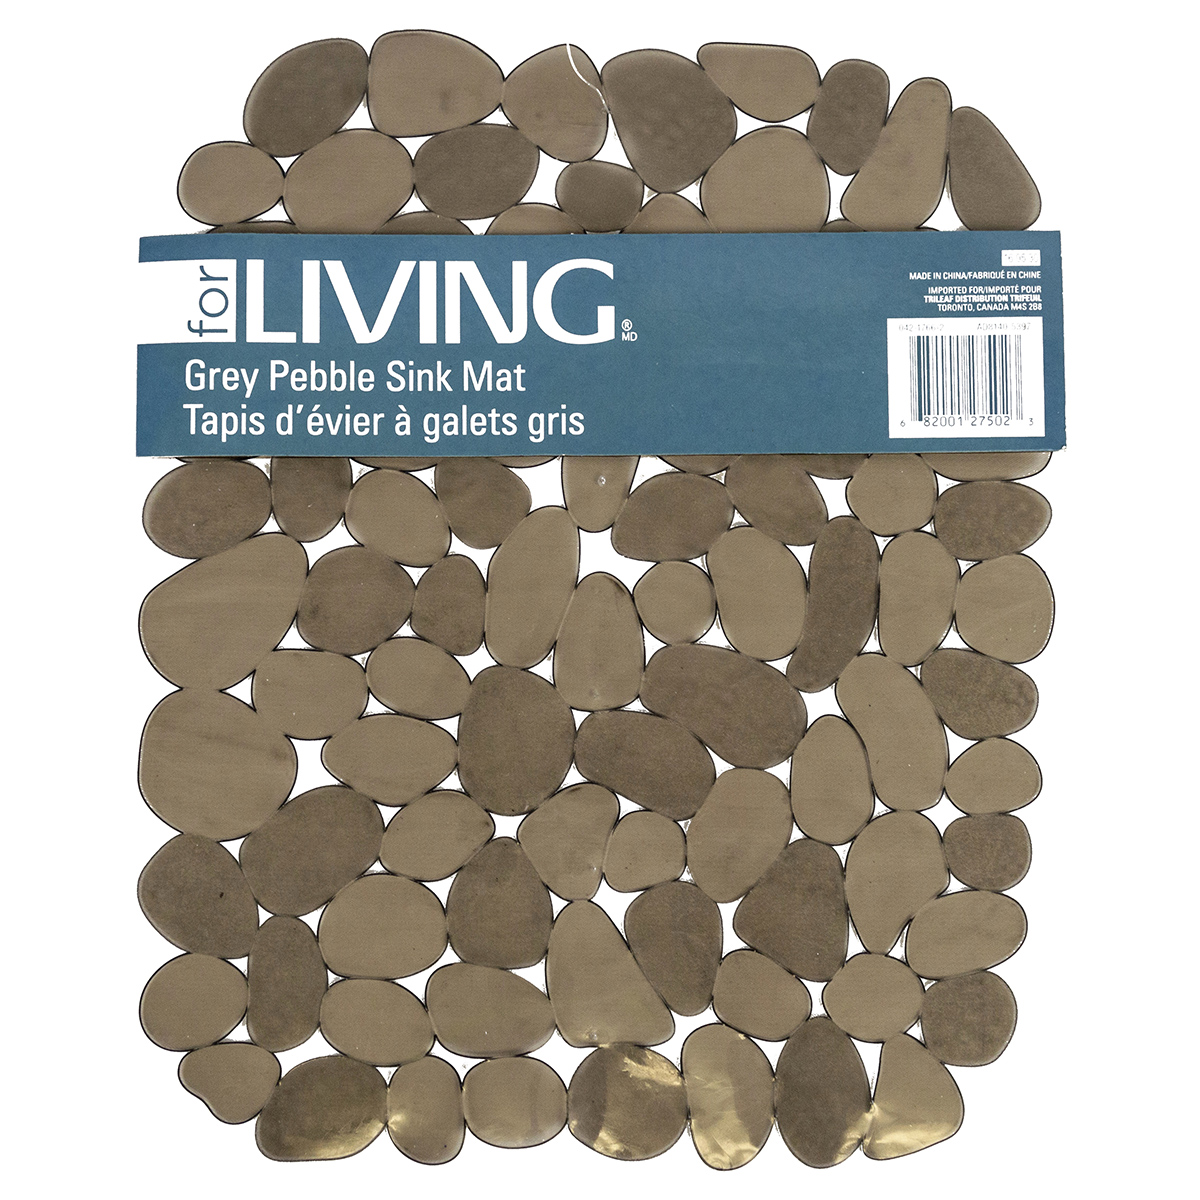 For Living Grey Pebble Sink Mat